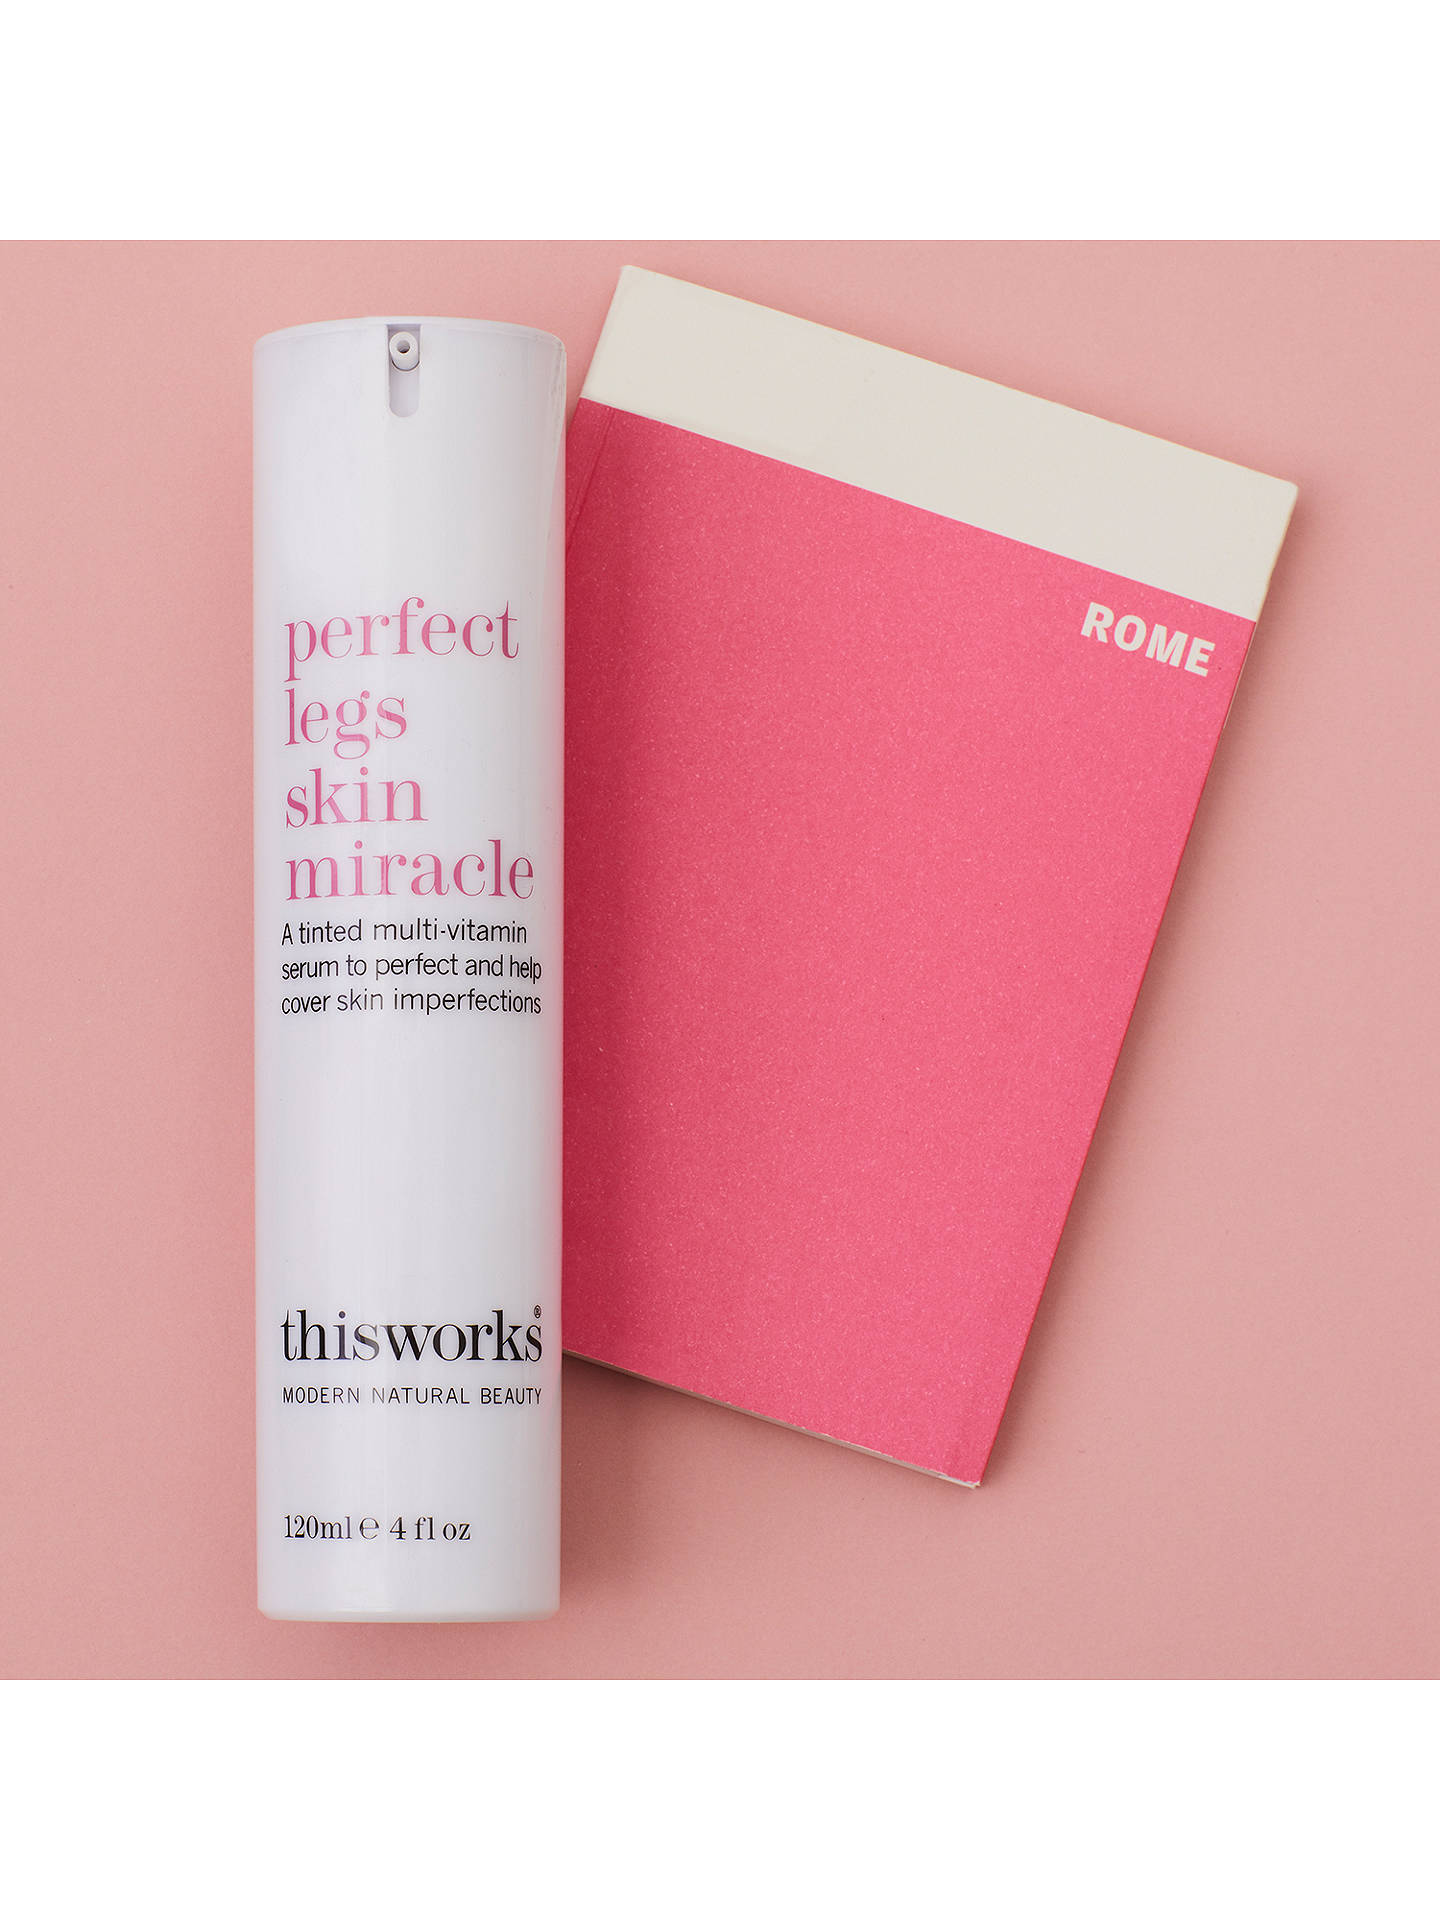 Buy This Works Perfect Legs Skin Miracle, 120ml Online at johnlewis.com